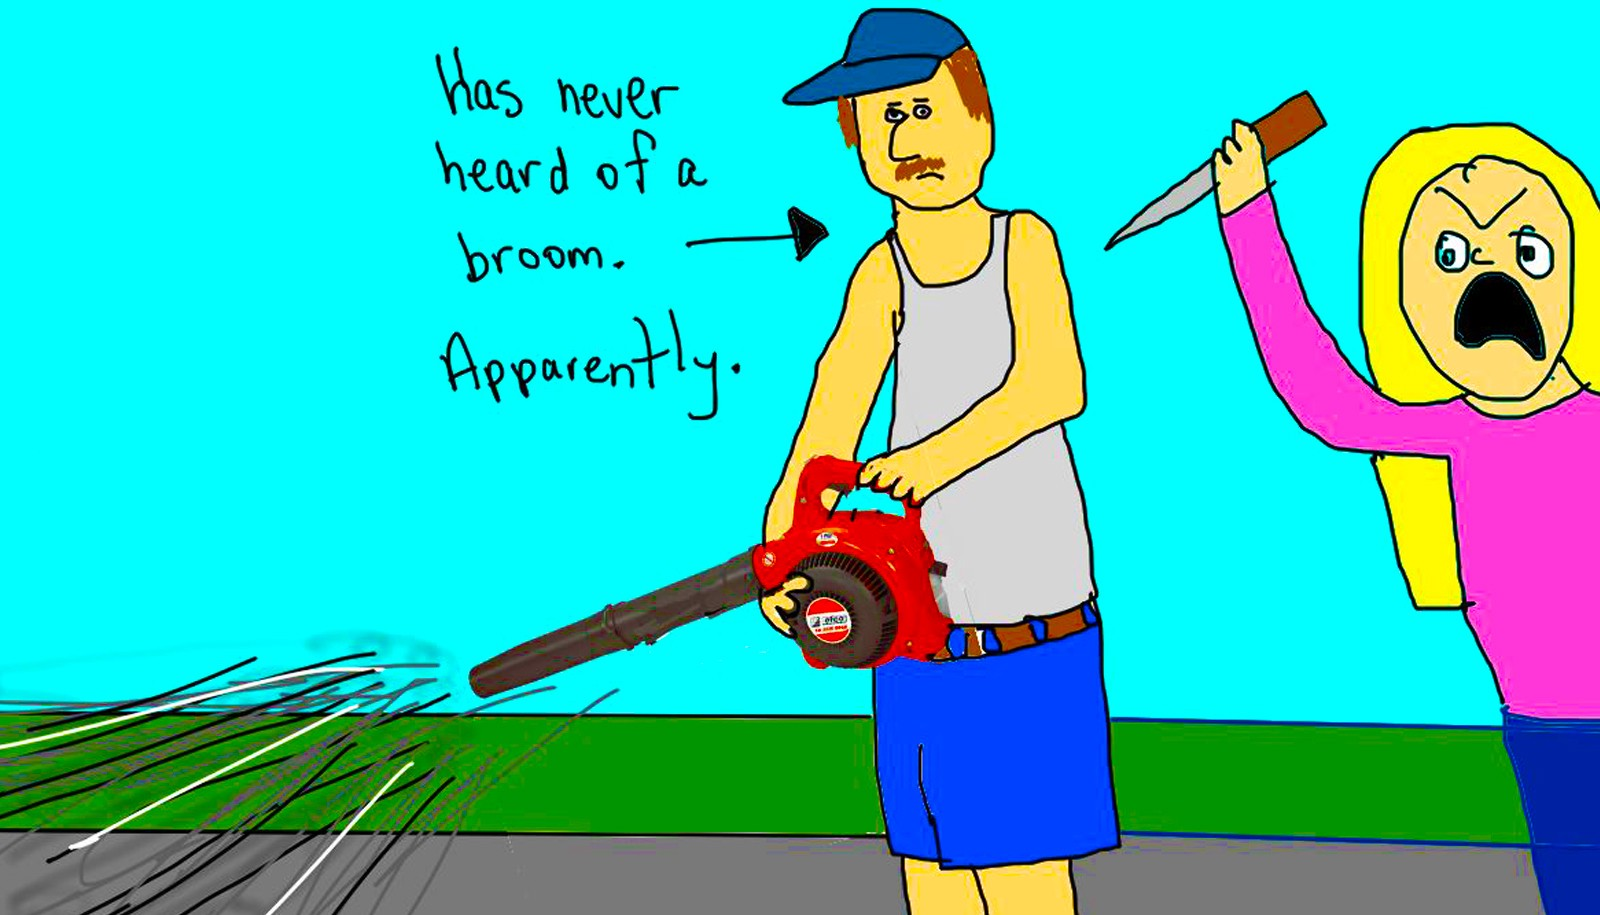 Phrase and leaf blowers piss me off topic something